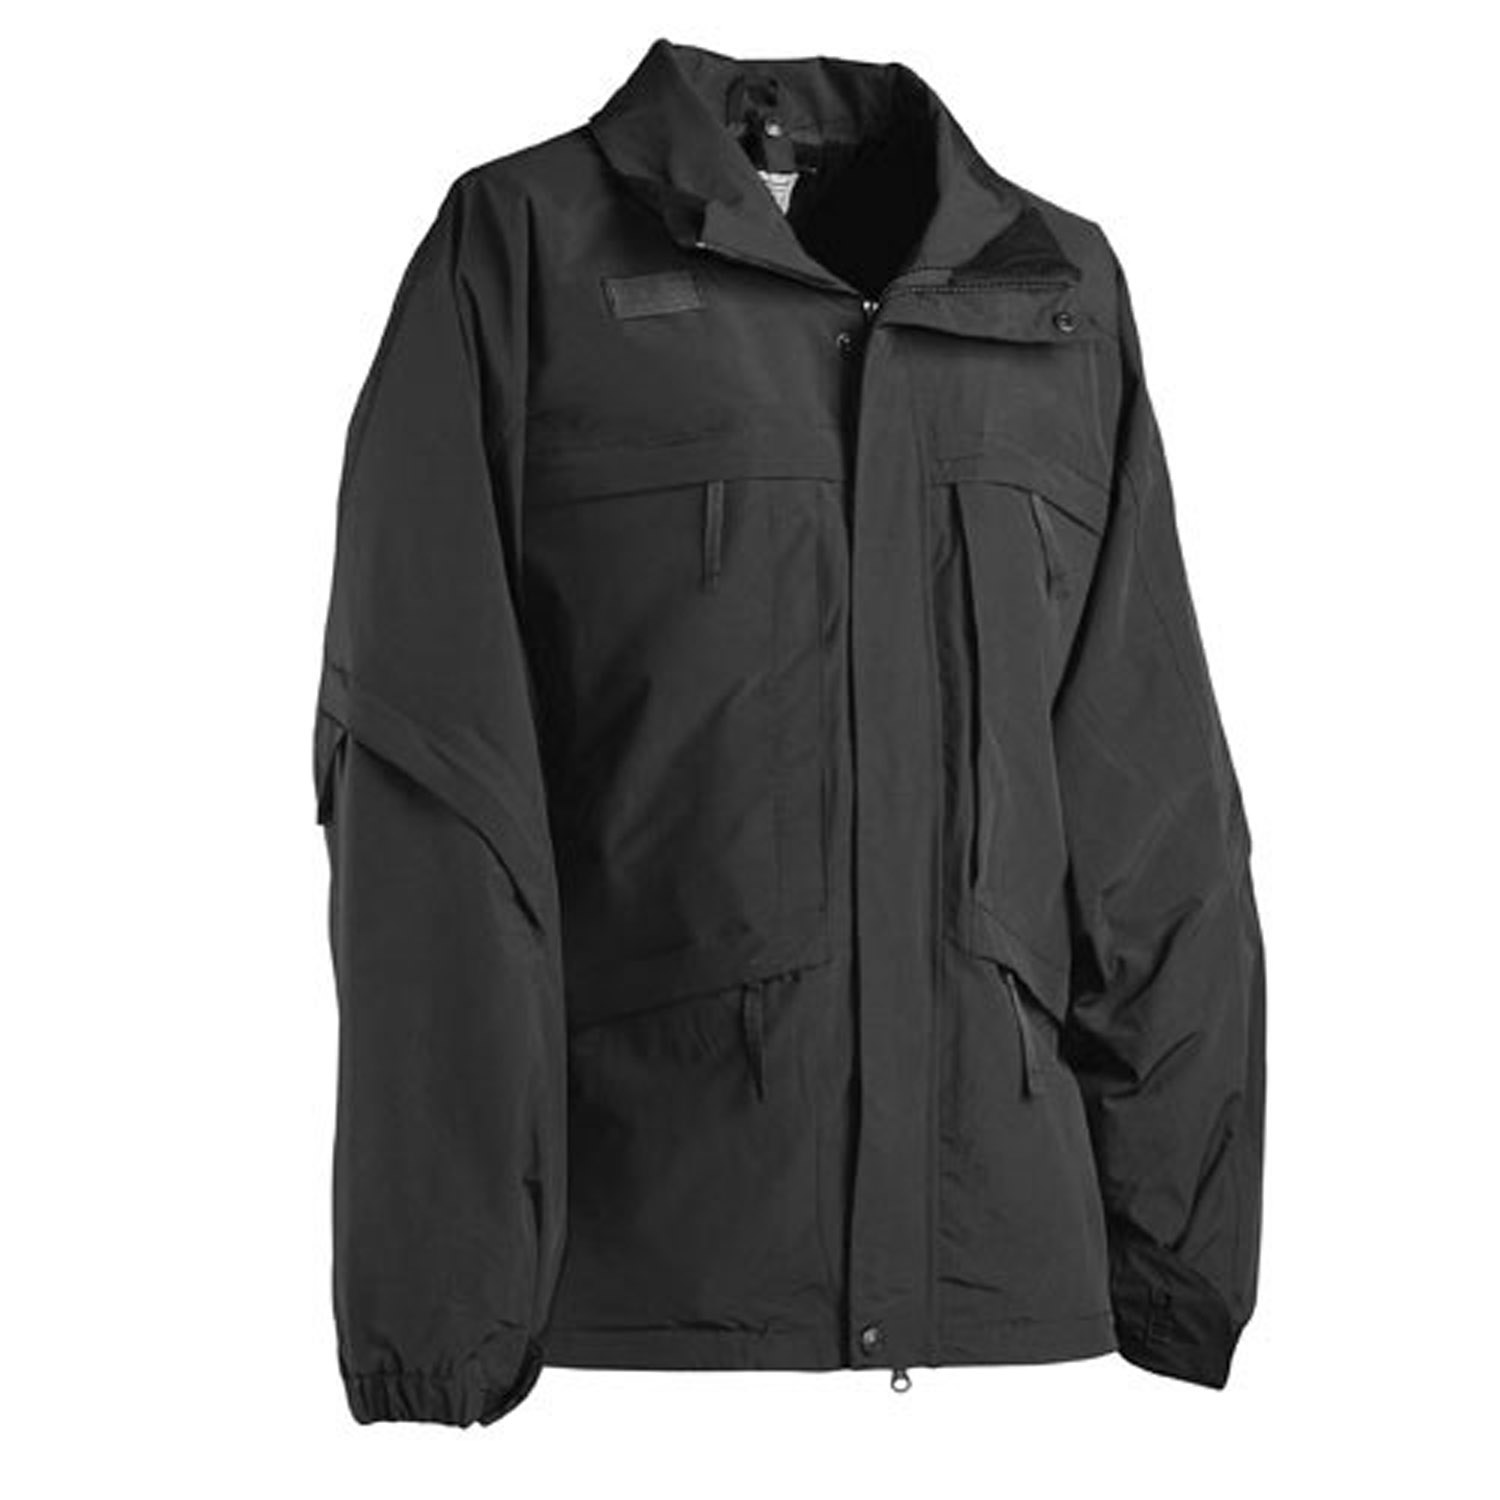 5.11 Tactical 3-in-1 Parka